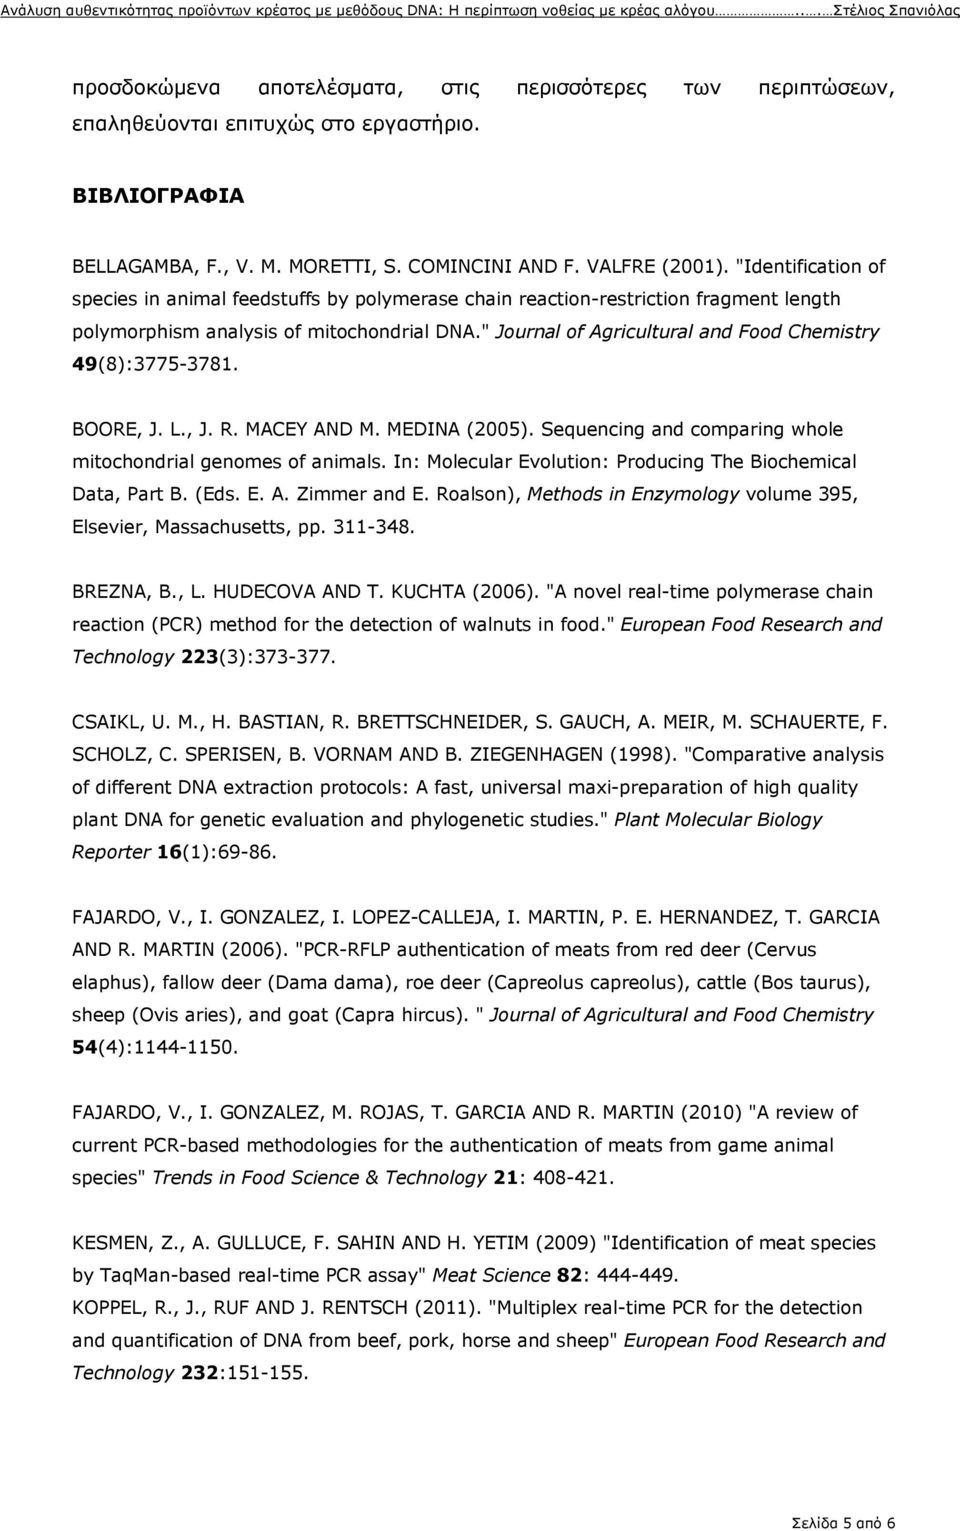 """ Journal of Agricultural and Food Chemistry 49(8):3775-3781. BOORE, J. L., J. R. MACEY AND M. MEDINA (2005). Sequencing and comparing whole mitochondrial genomes of animals."